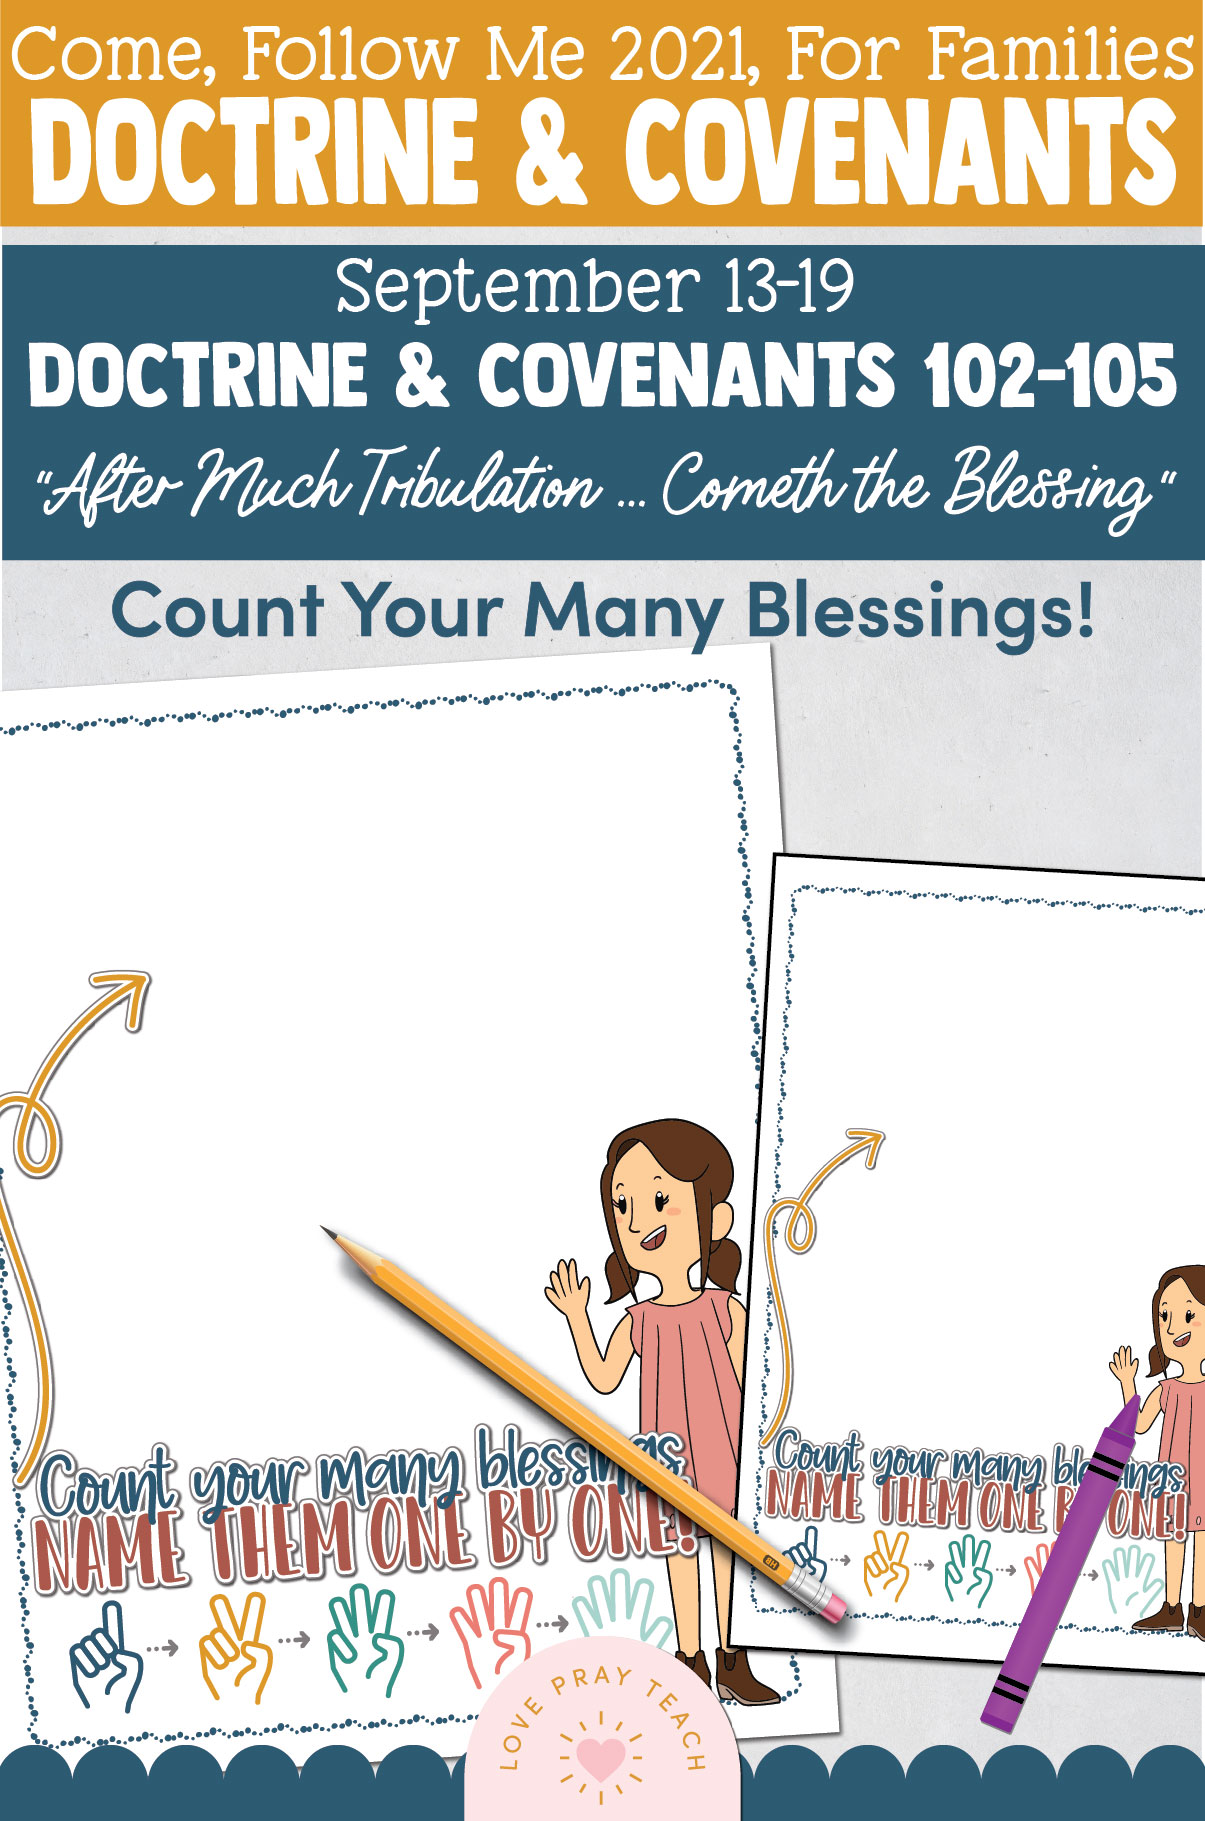 """Come, Follow Me—For Individuals and Families: Doctrine And Covenants 2021, September Week 3 Doctrine and Covenants 102-105: September 13-19, """"After Much Tribulation … Cometh the Blessing"""""""